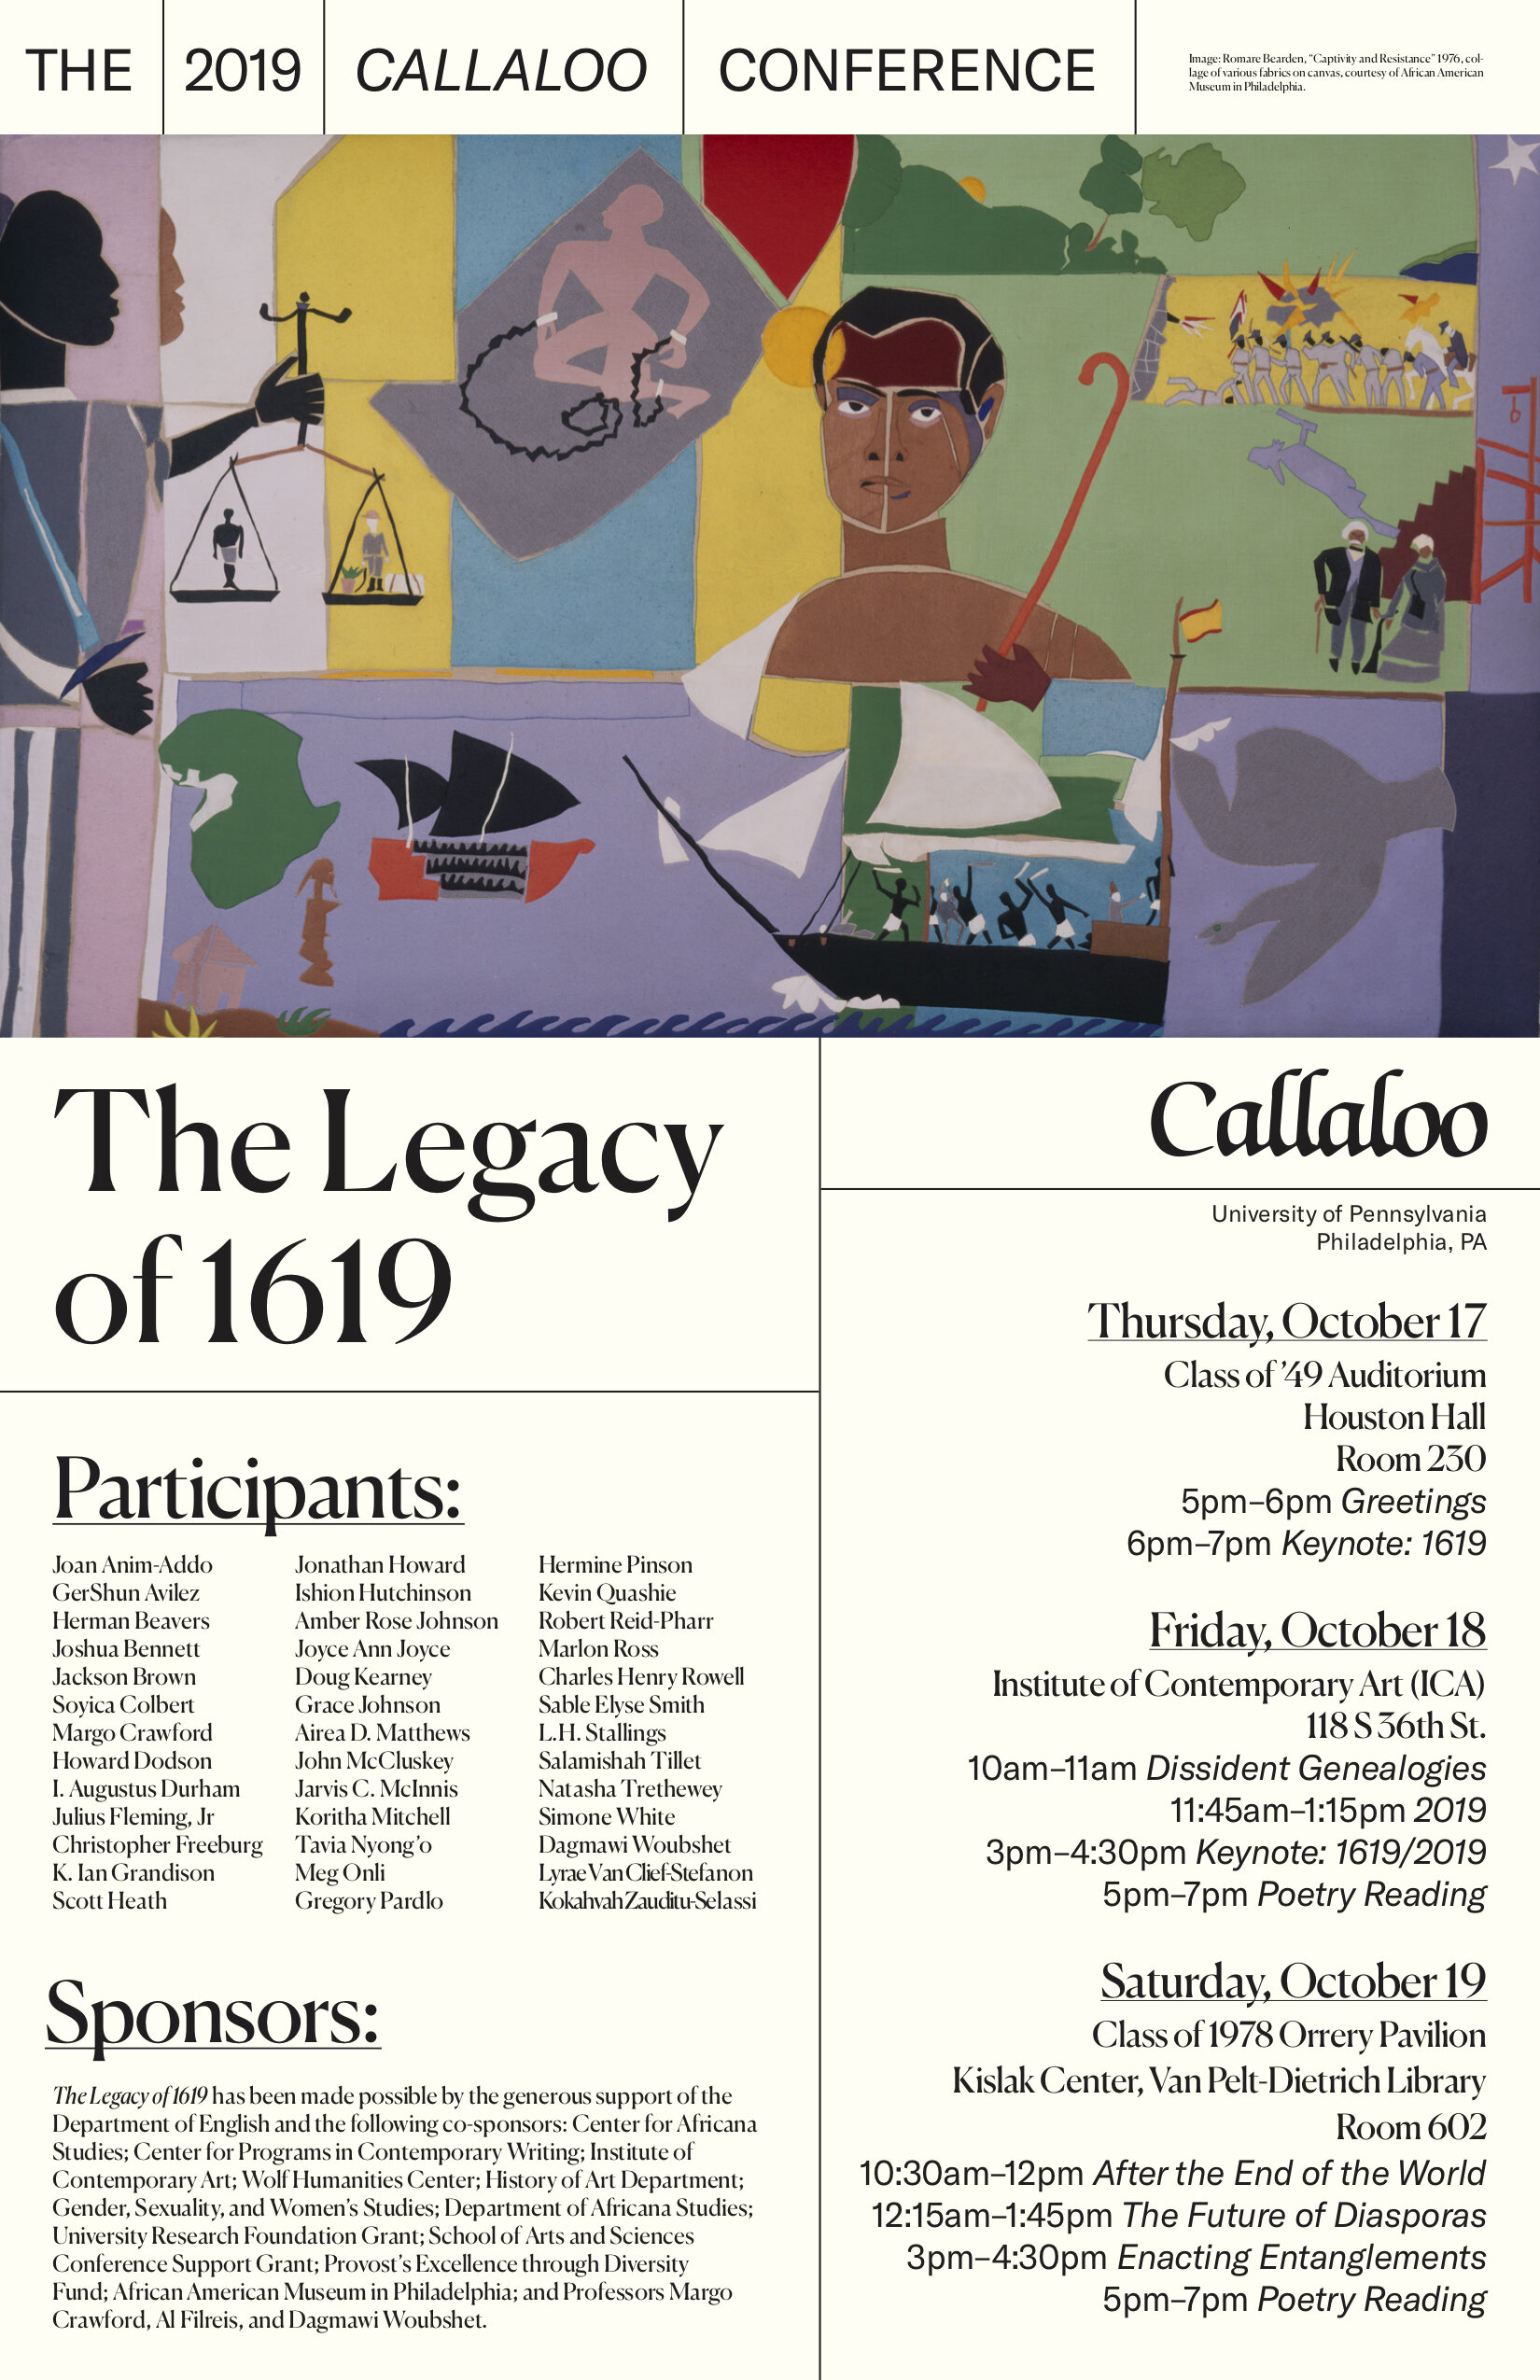 The Legacy of 1619 Conference Poster.jpg